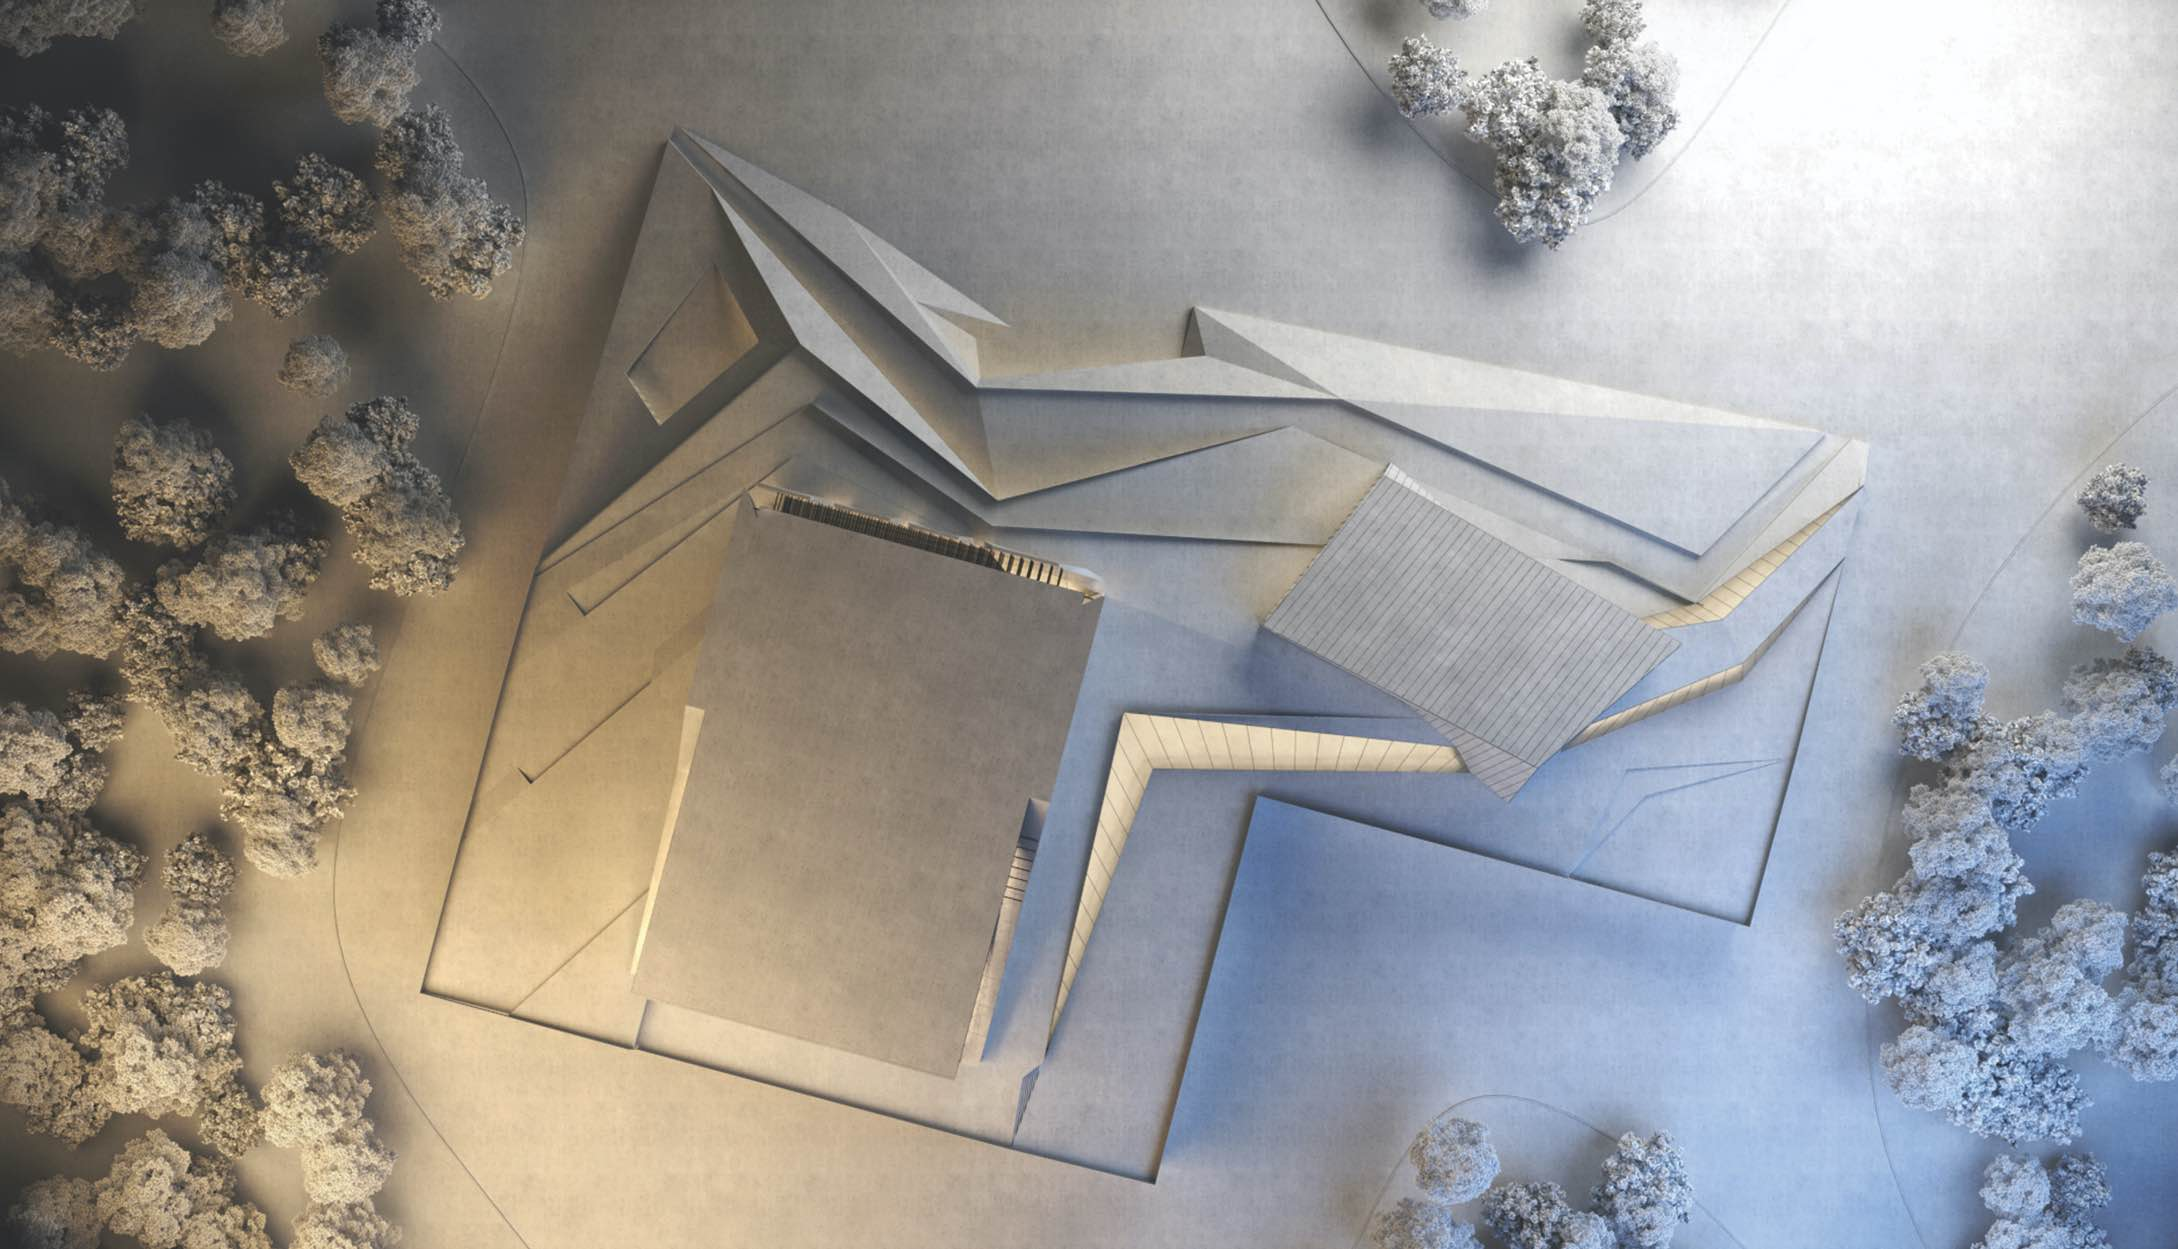 maquette of the cultural concert house